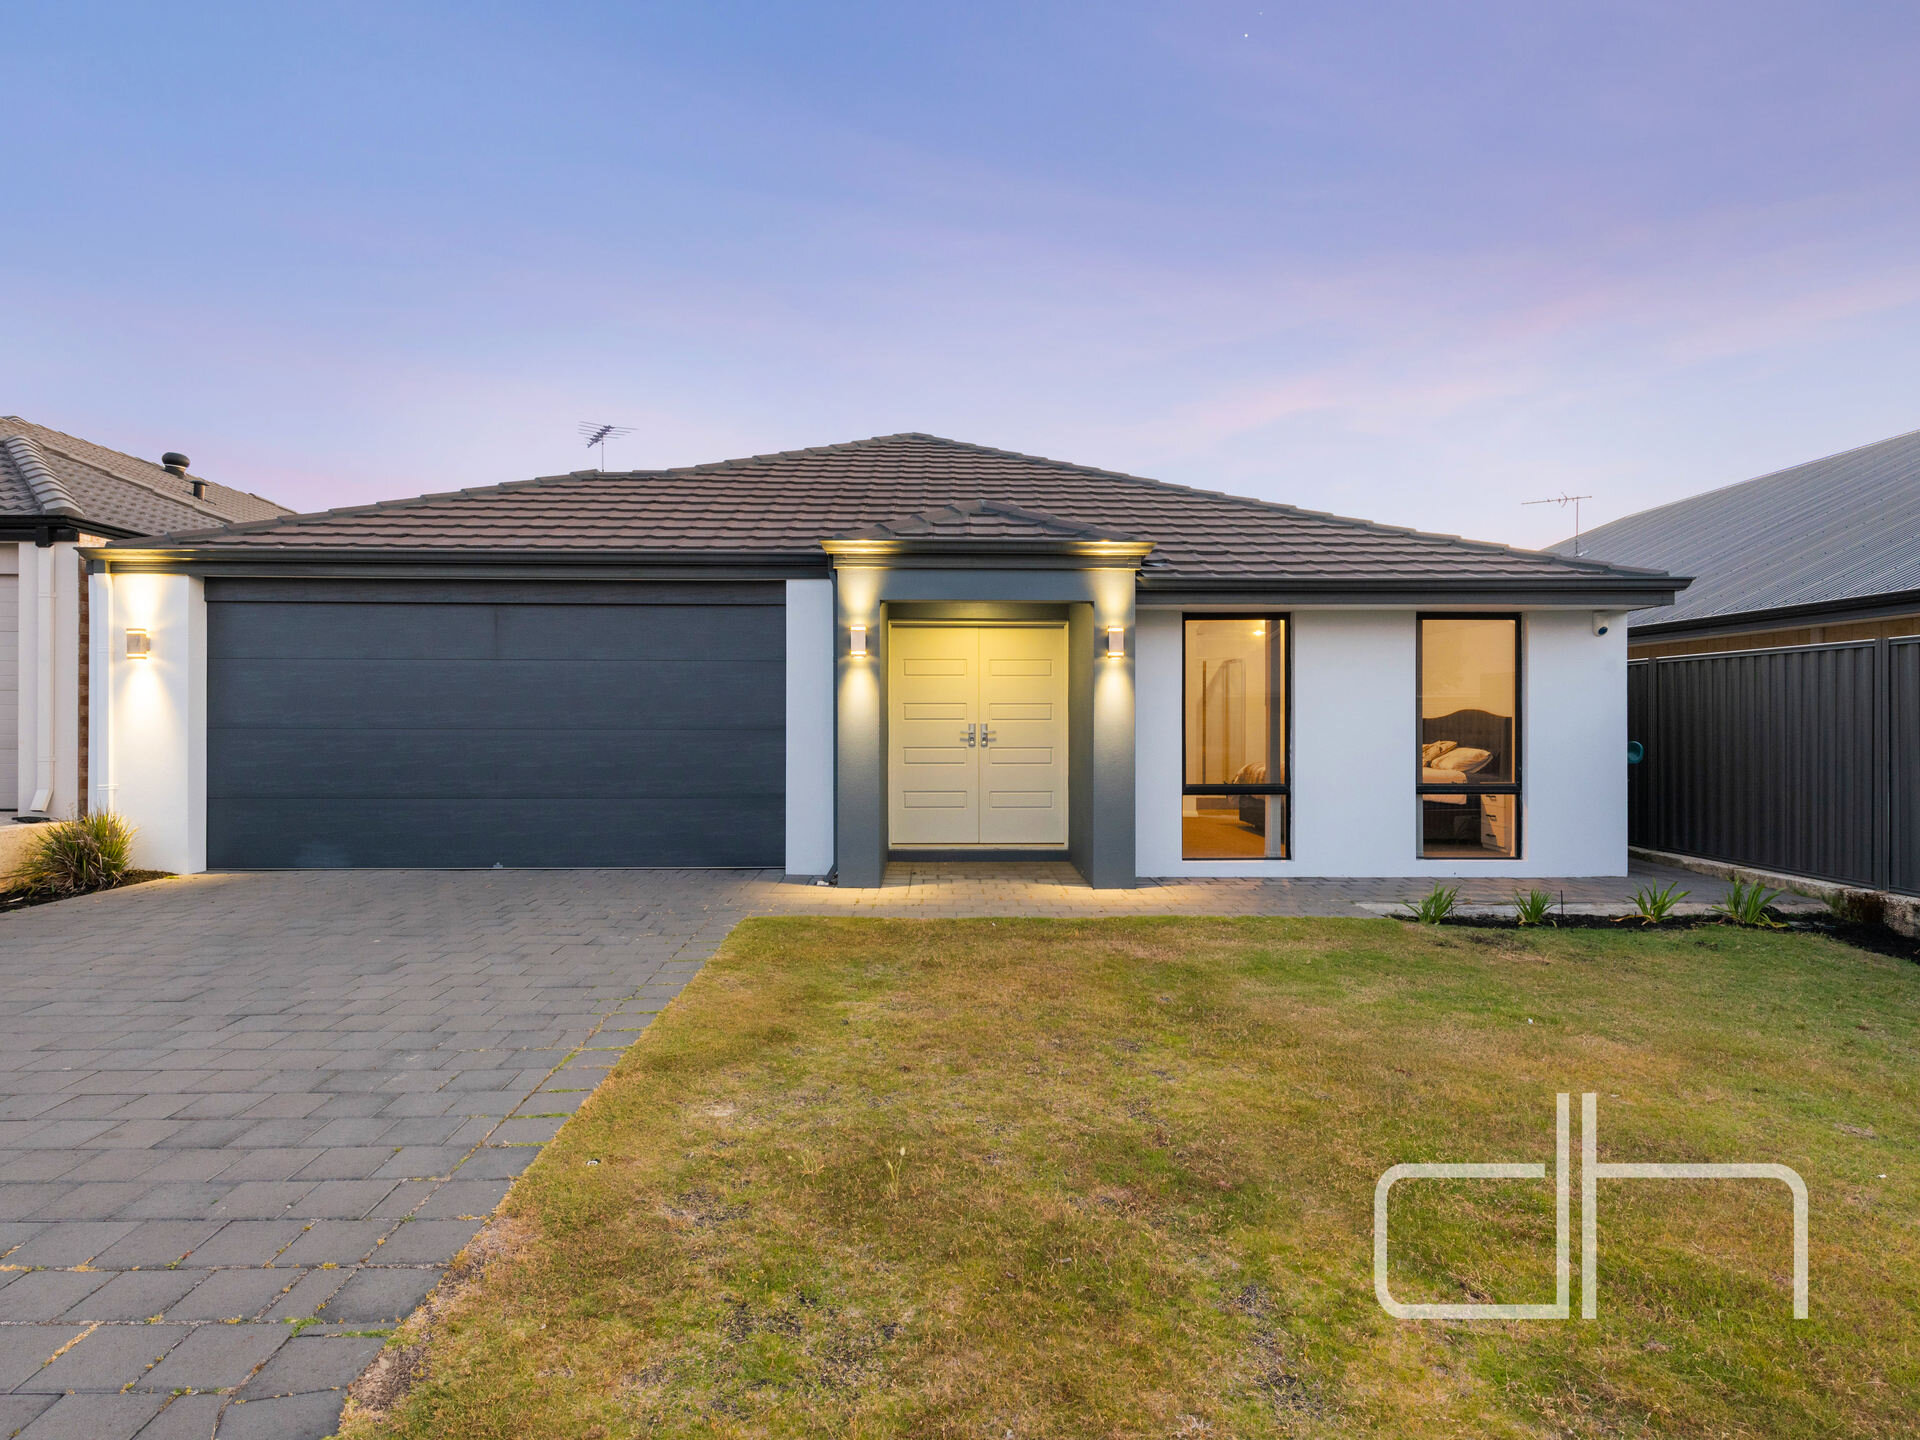 4 Malmaison Way: Offers Guide From $519,000